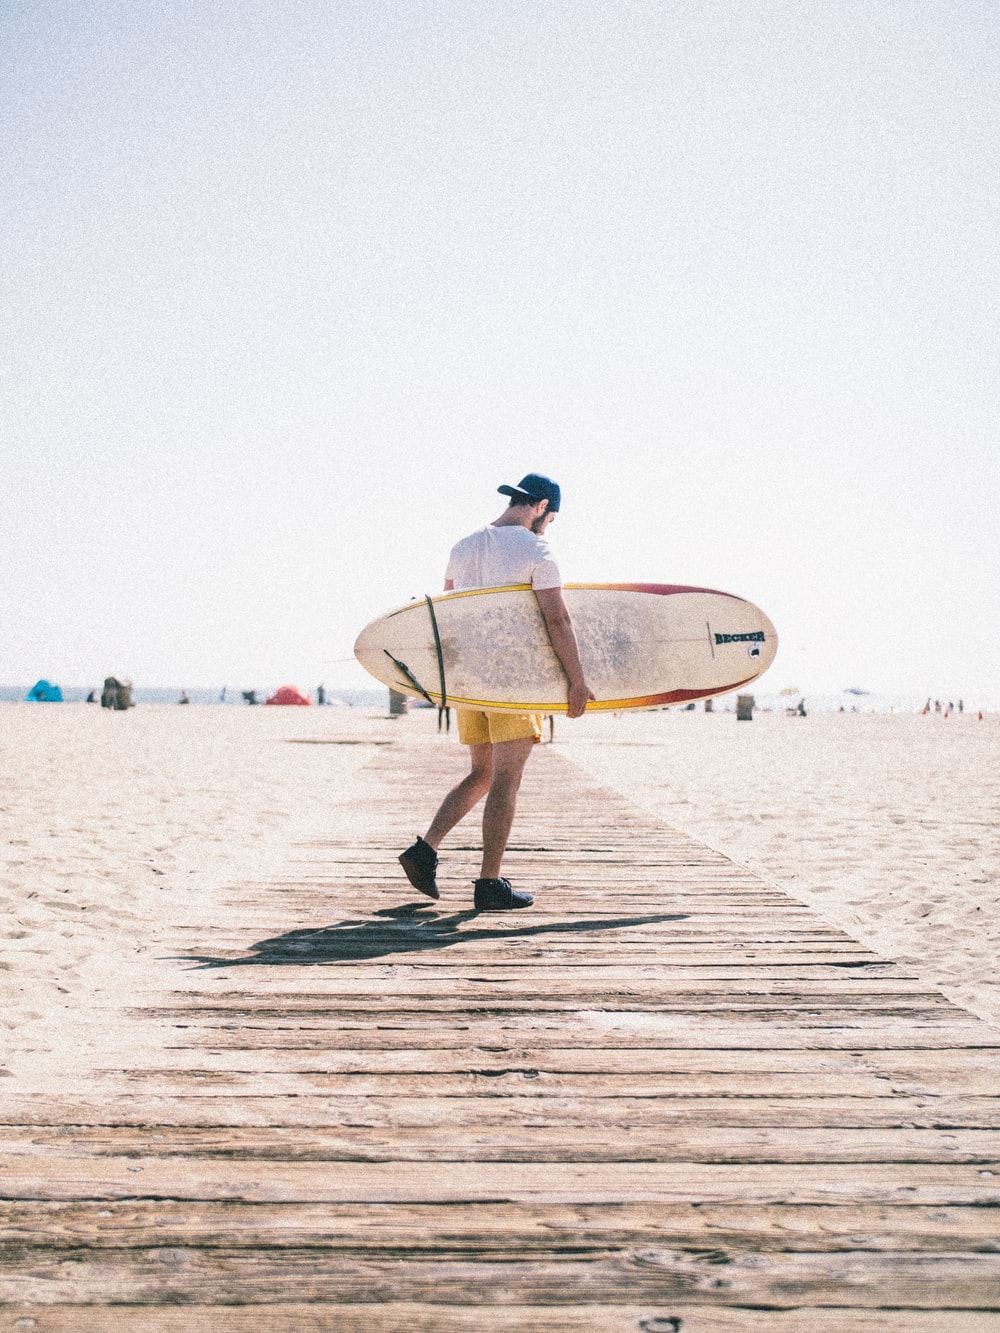 man carrying surfboard while walking on wooden pathway